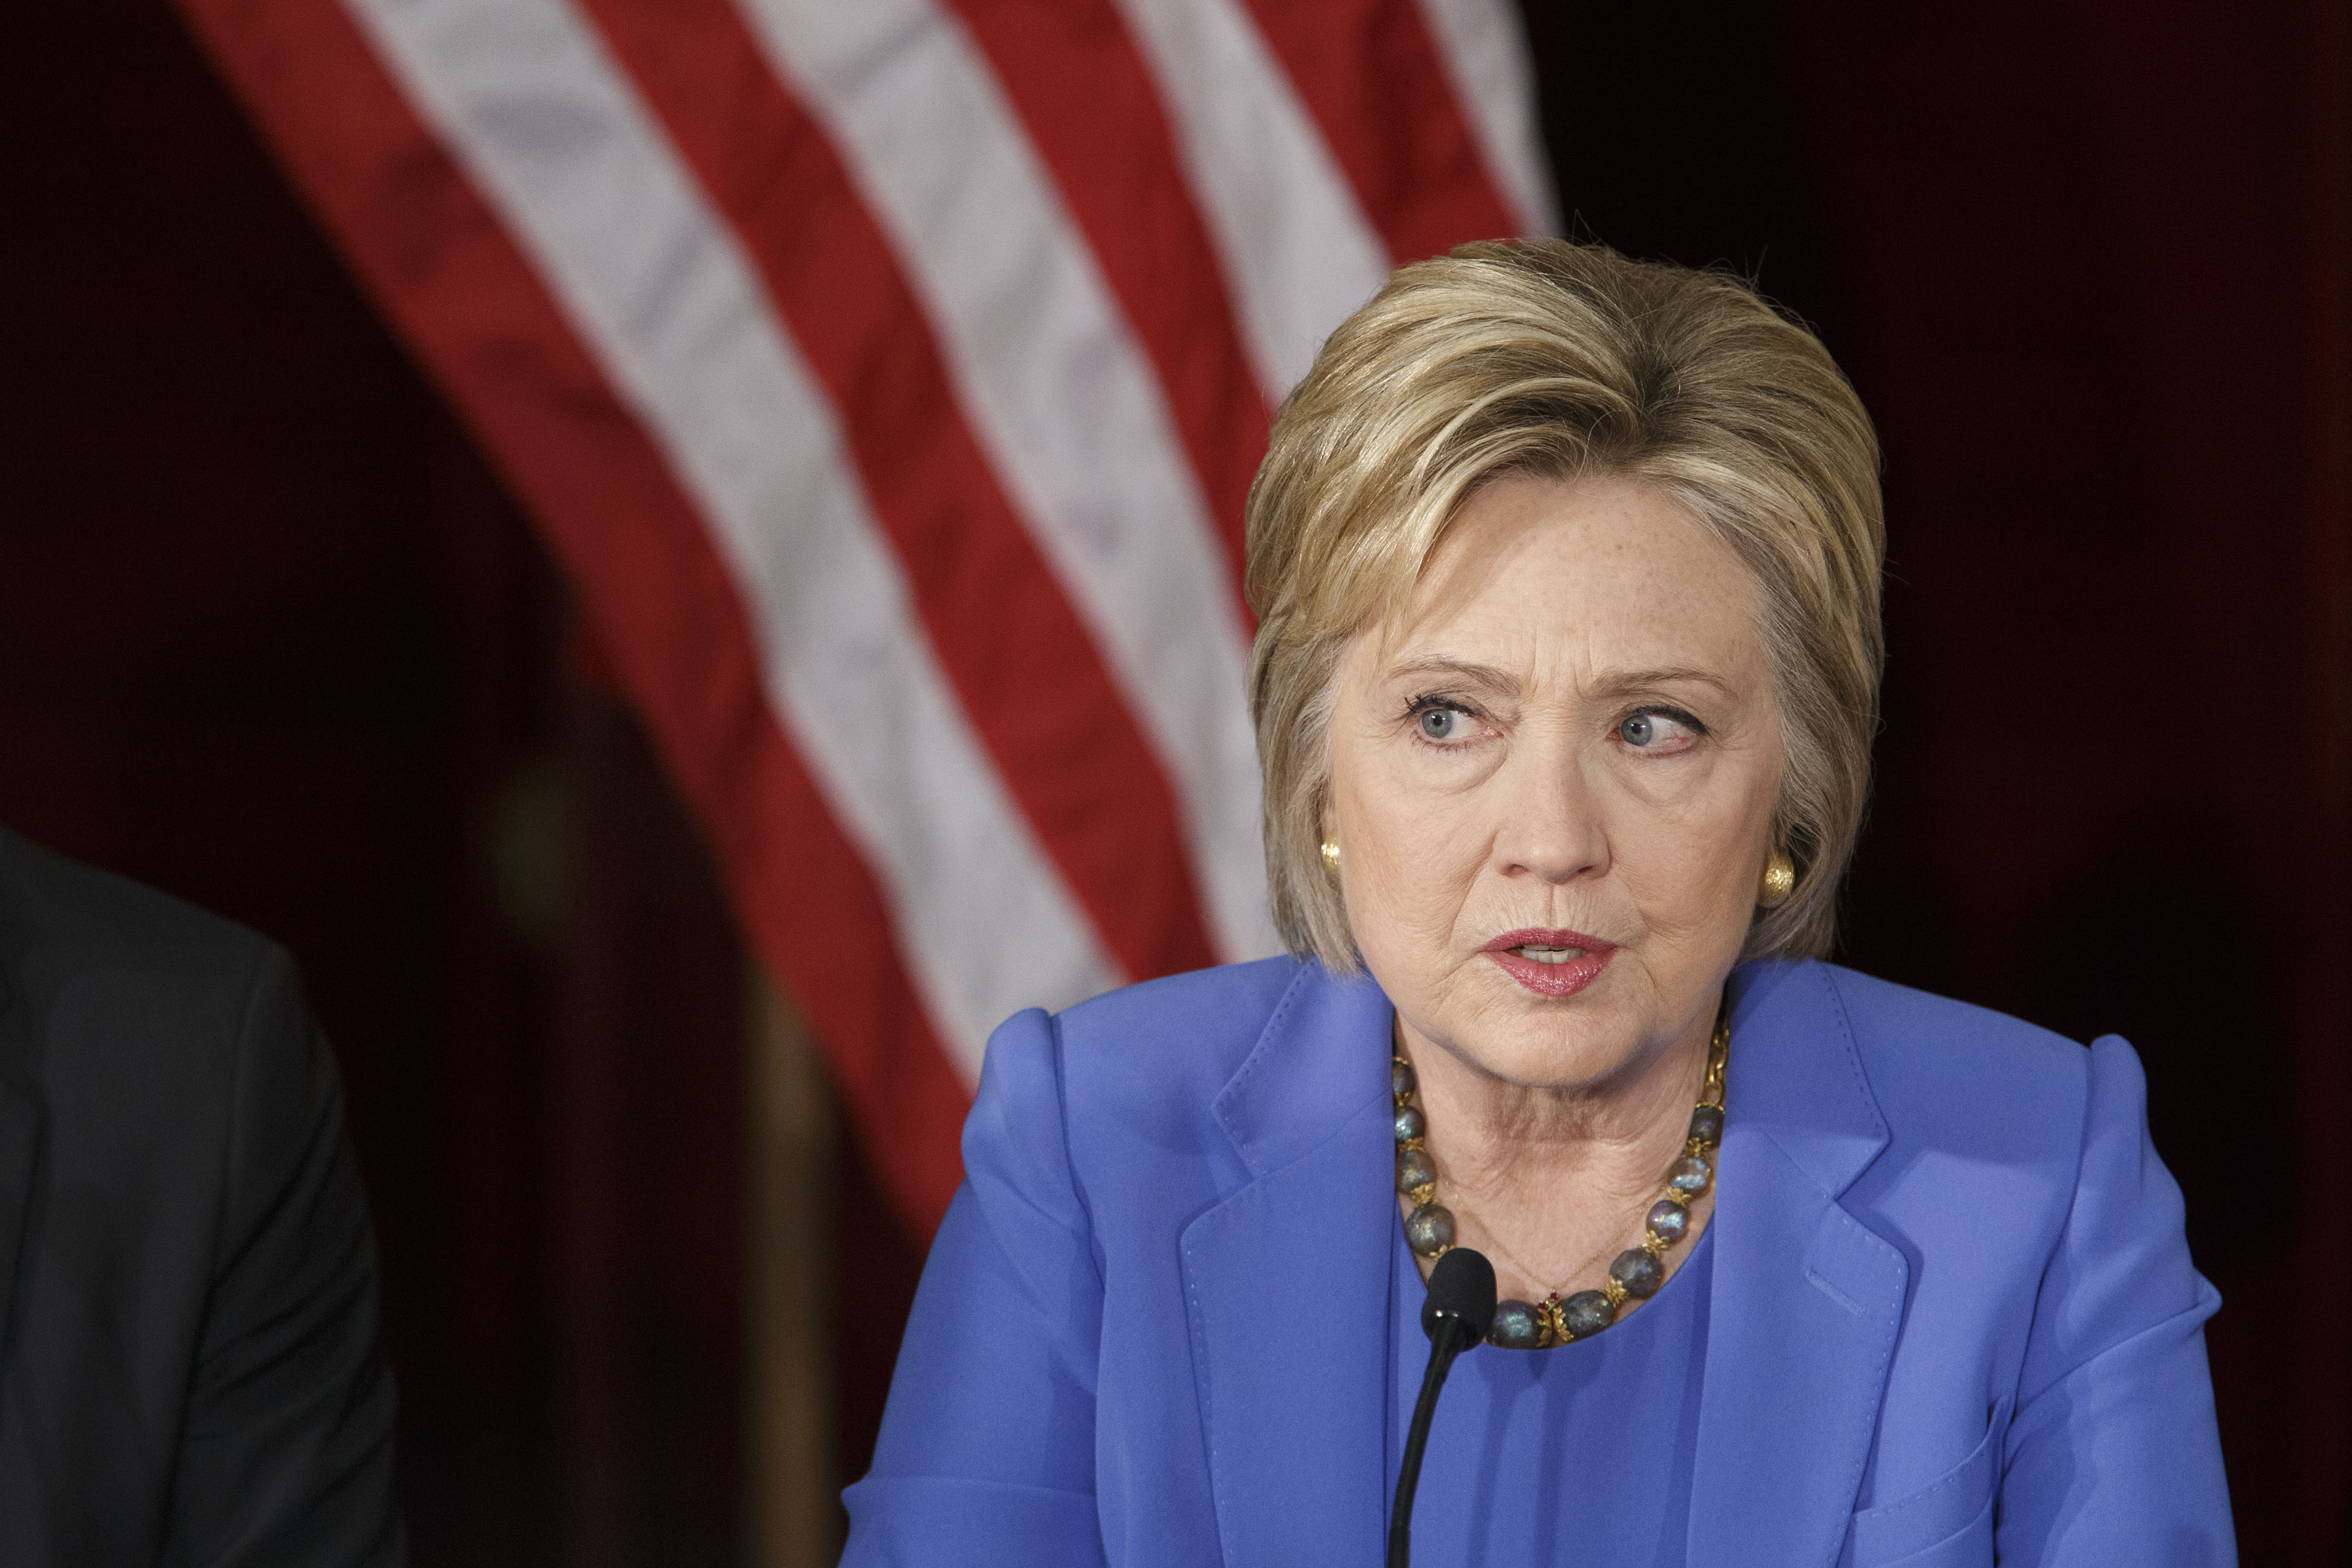 Hillary Clinton, former Secretary of State and 2016 Democratic presidential candidate, speaks during a round table discussion at the University of Southern California (USC) in Los Angeles, California, U.S., on Thursday, March 24, 2016.